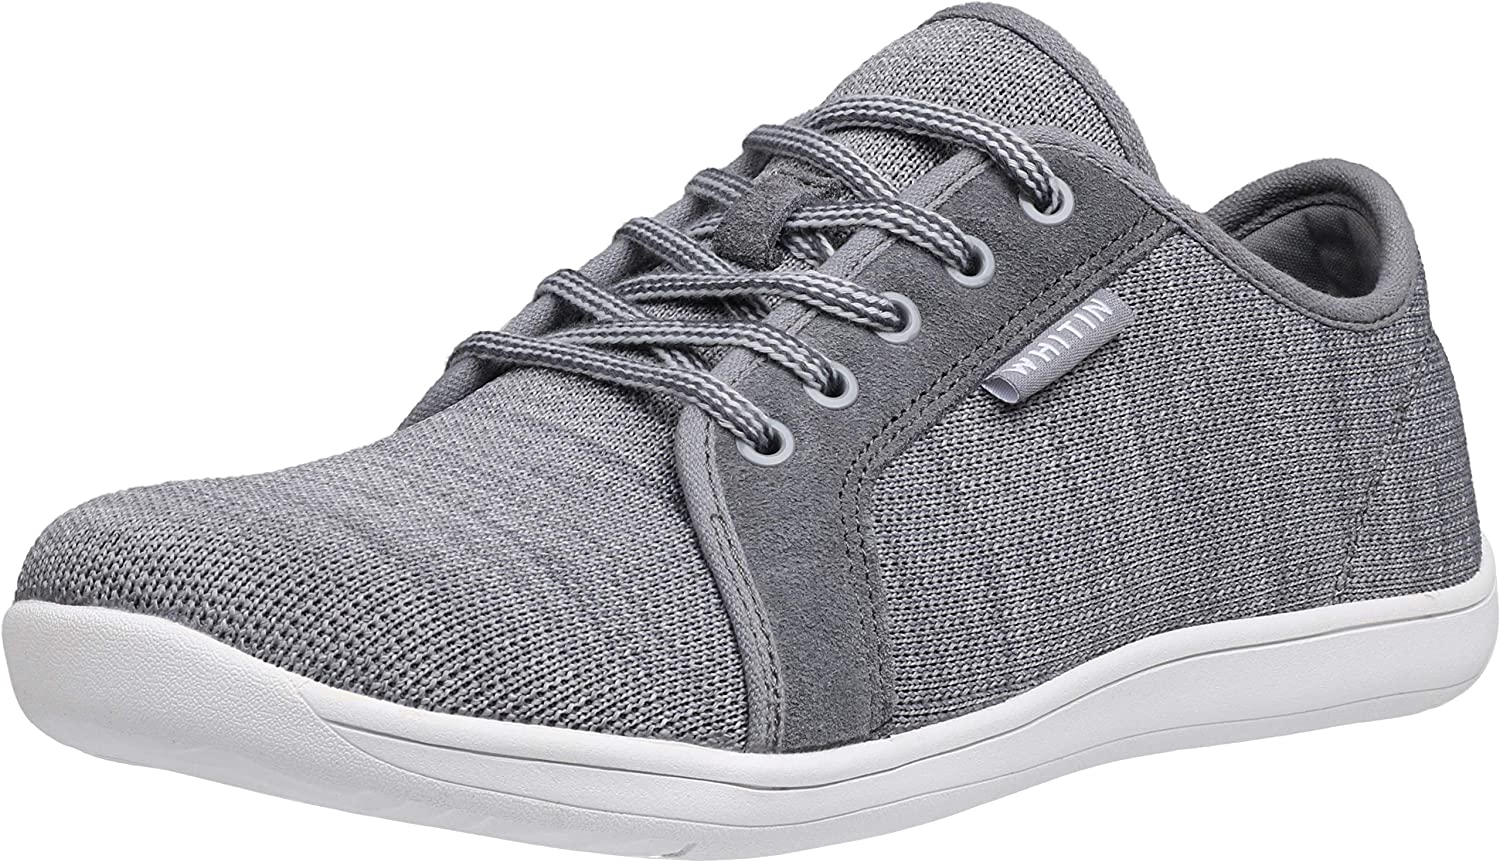 WHITIN Year-end annual account Men's Barefoot Sneakers Wide fit Support Zero Free shipping on posting reviews Arch